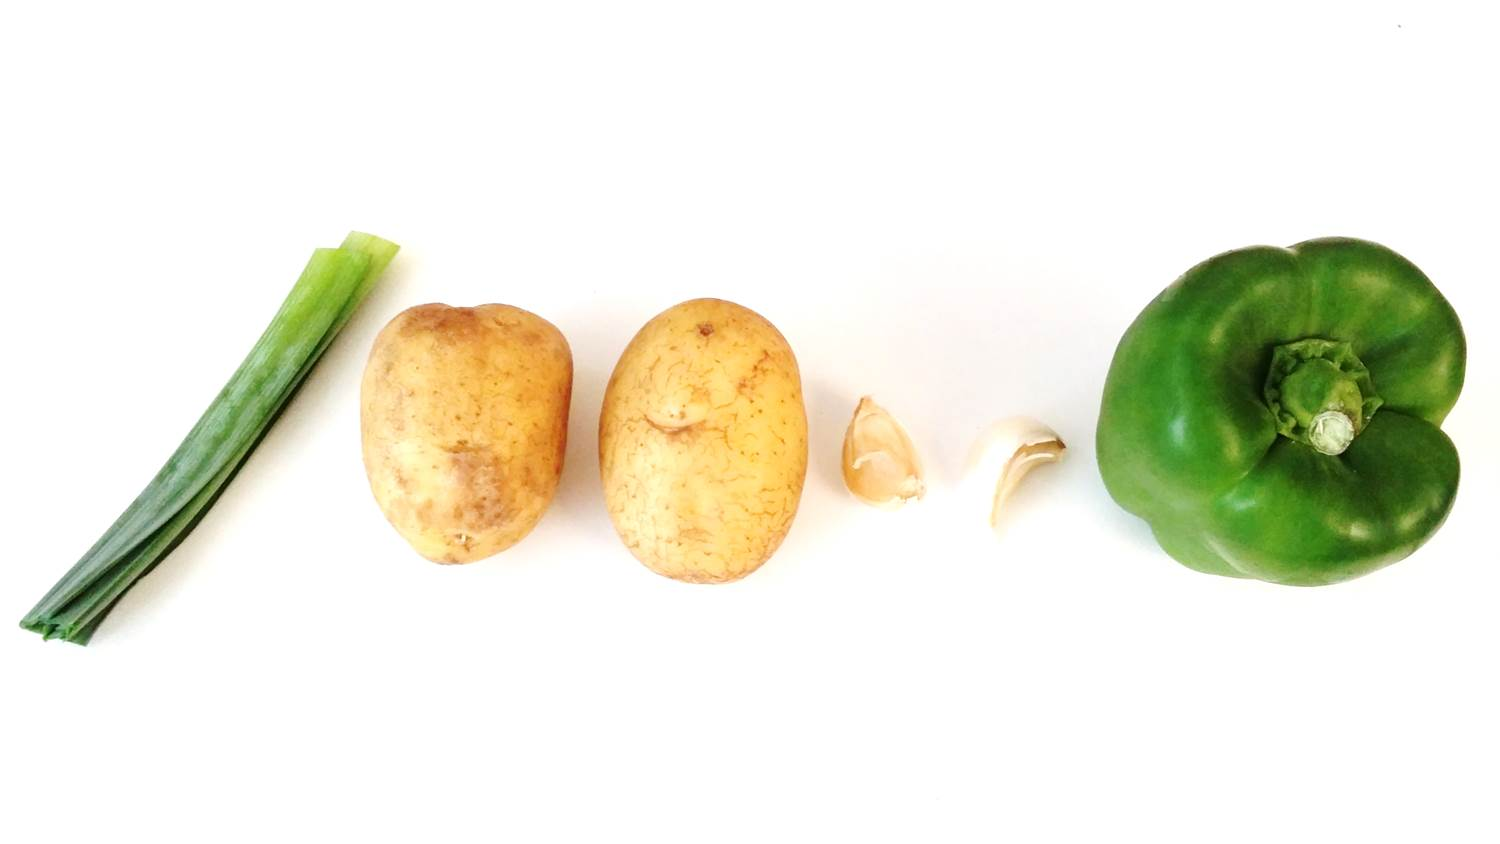 WENHUA DUVERGÉ - Stir-fried Organic potatoes with green peppers